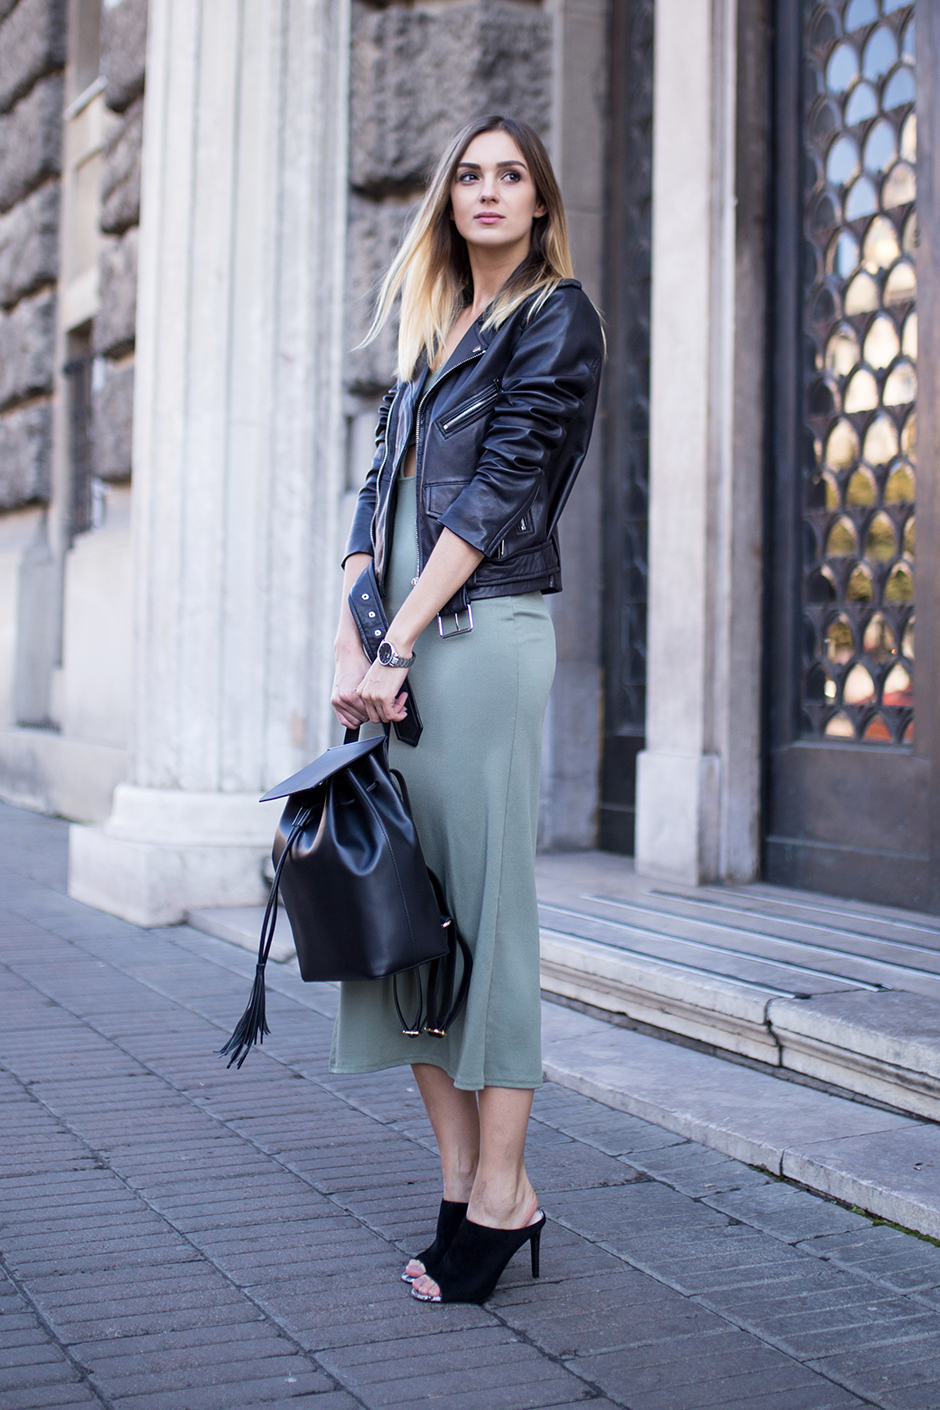 khaki-dress-leather-jacket-mules-street-style-outfit